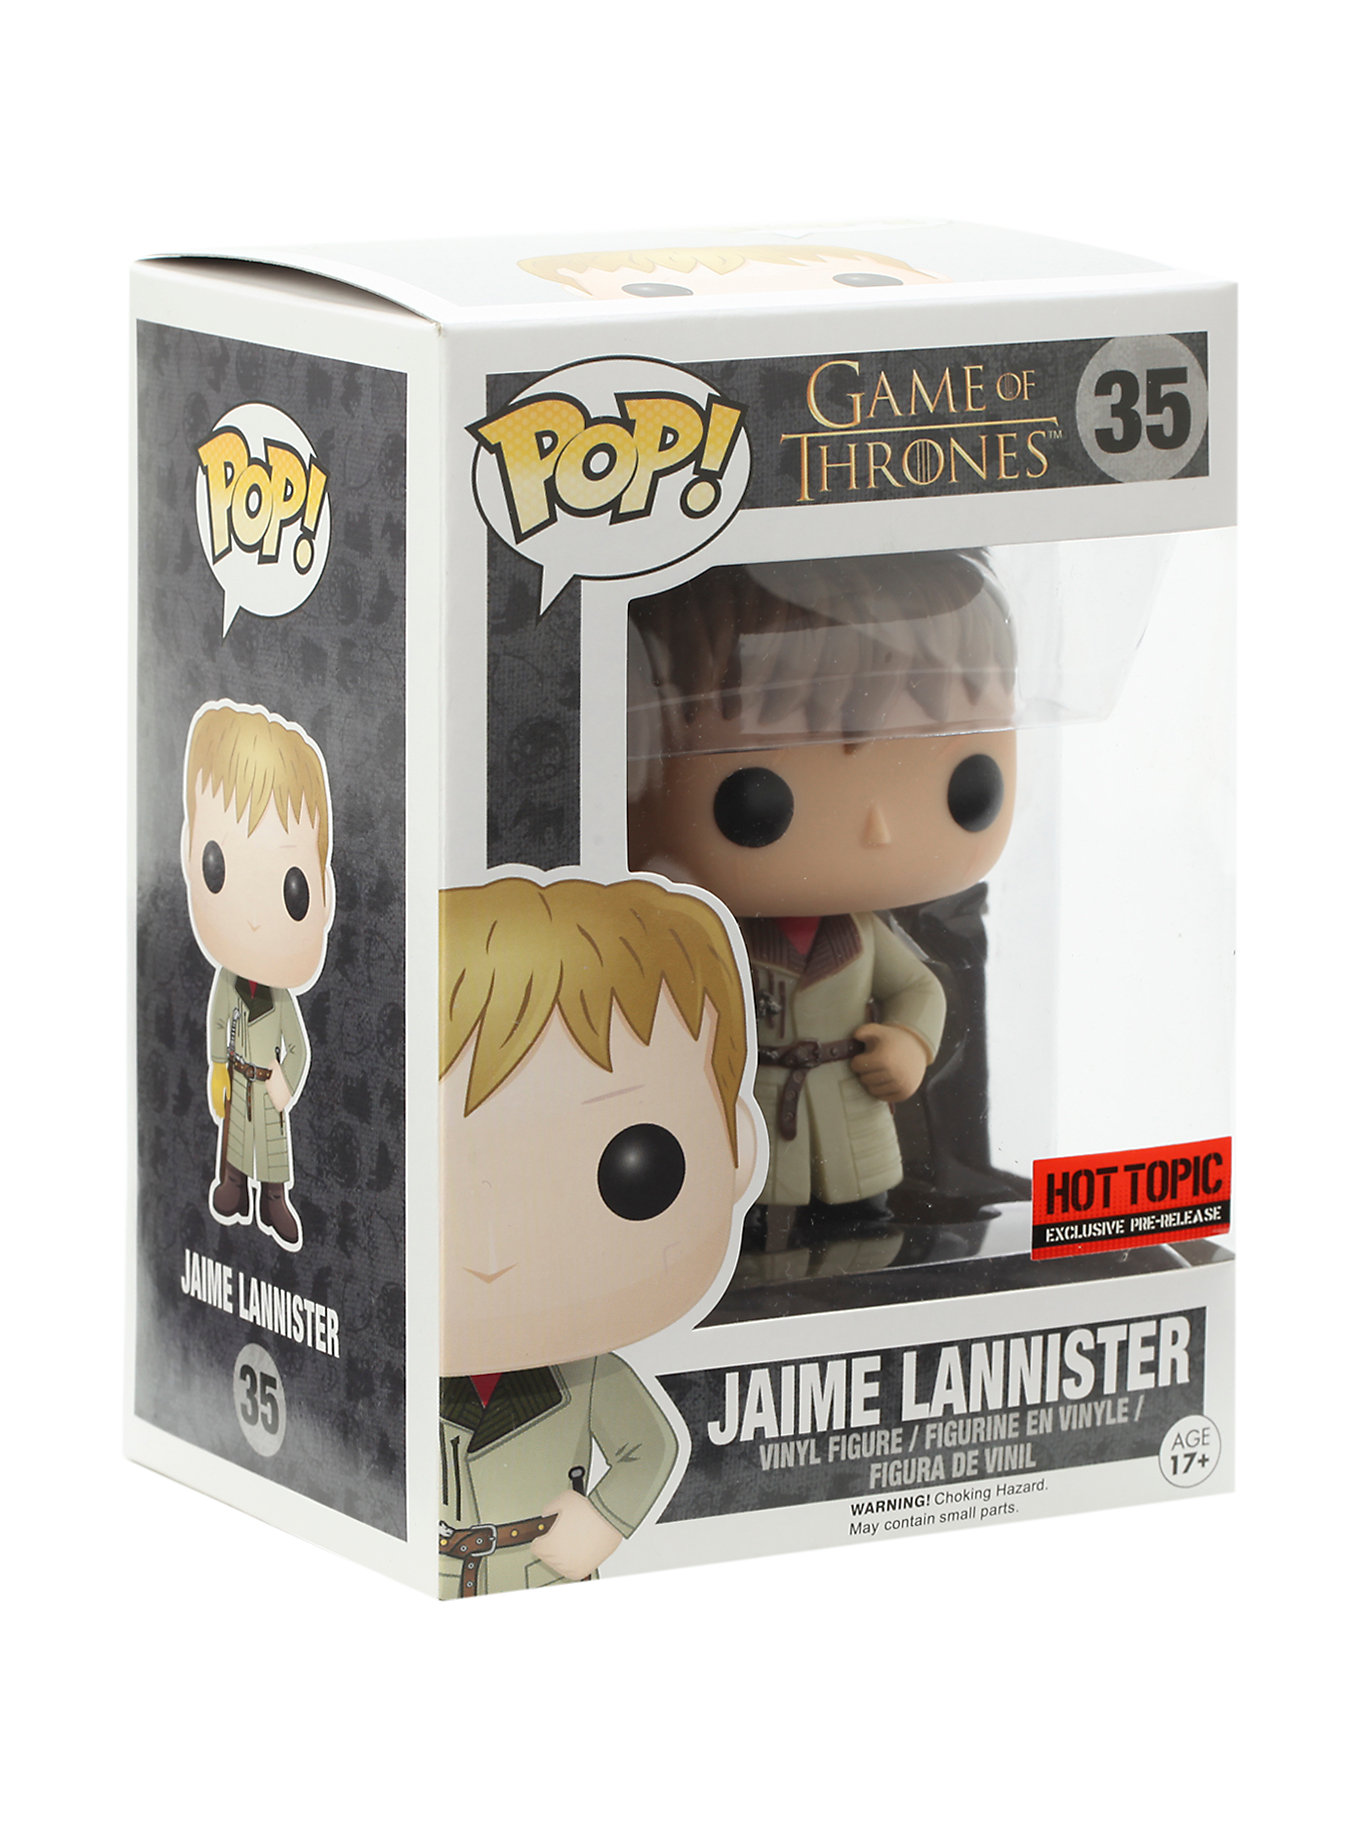 JAIME LANNISTER HOT TOPIC EXCLUSIVE #35